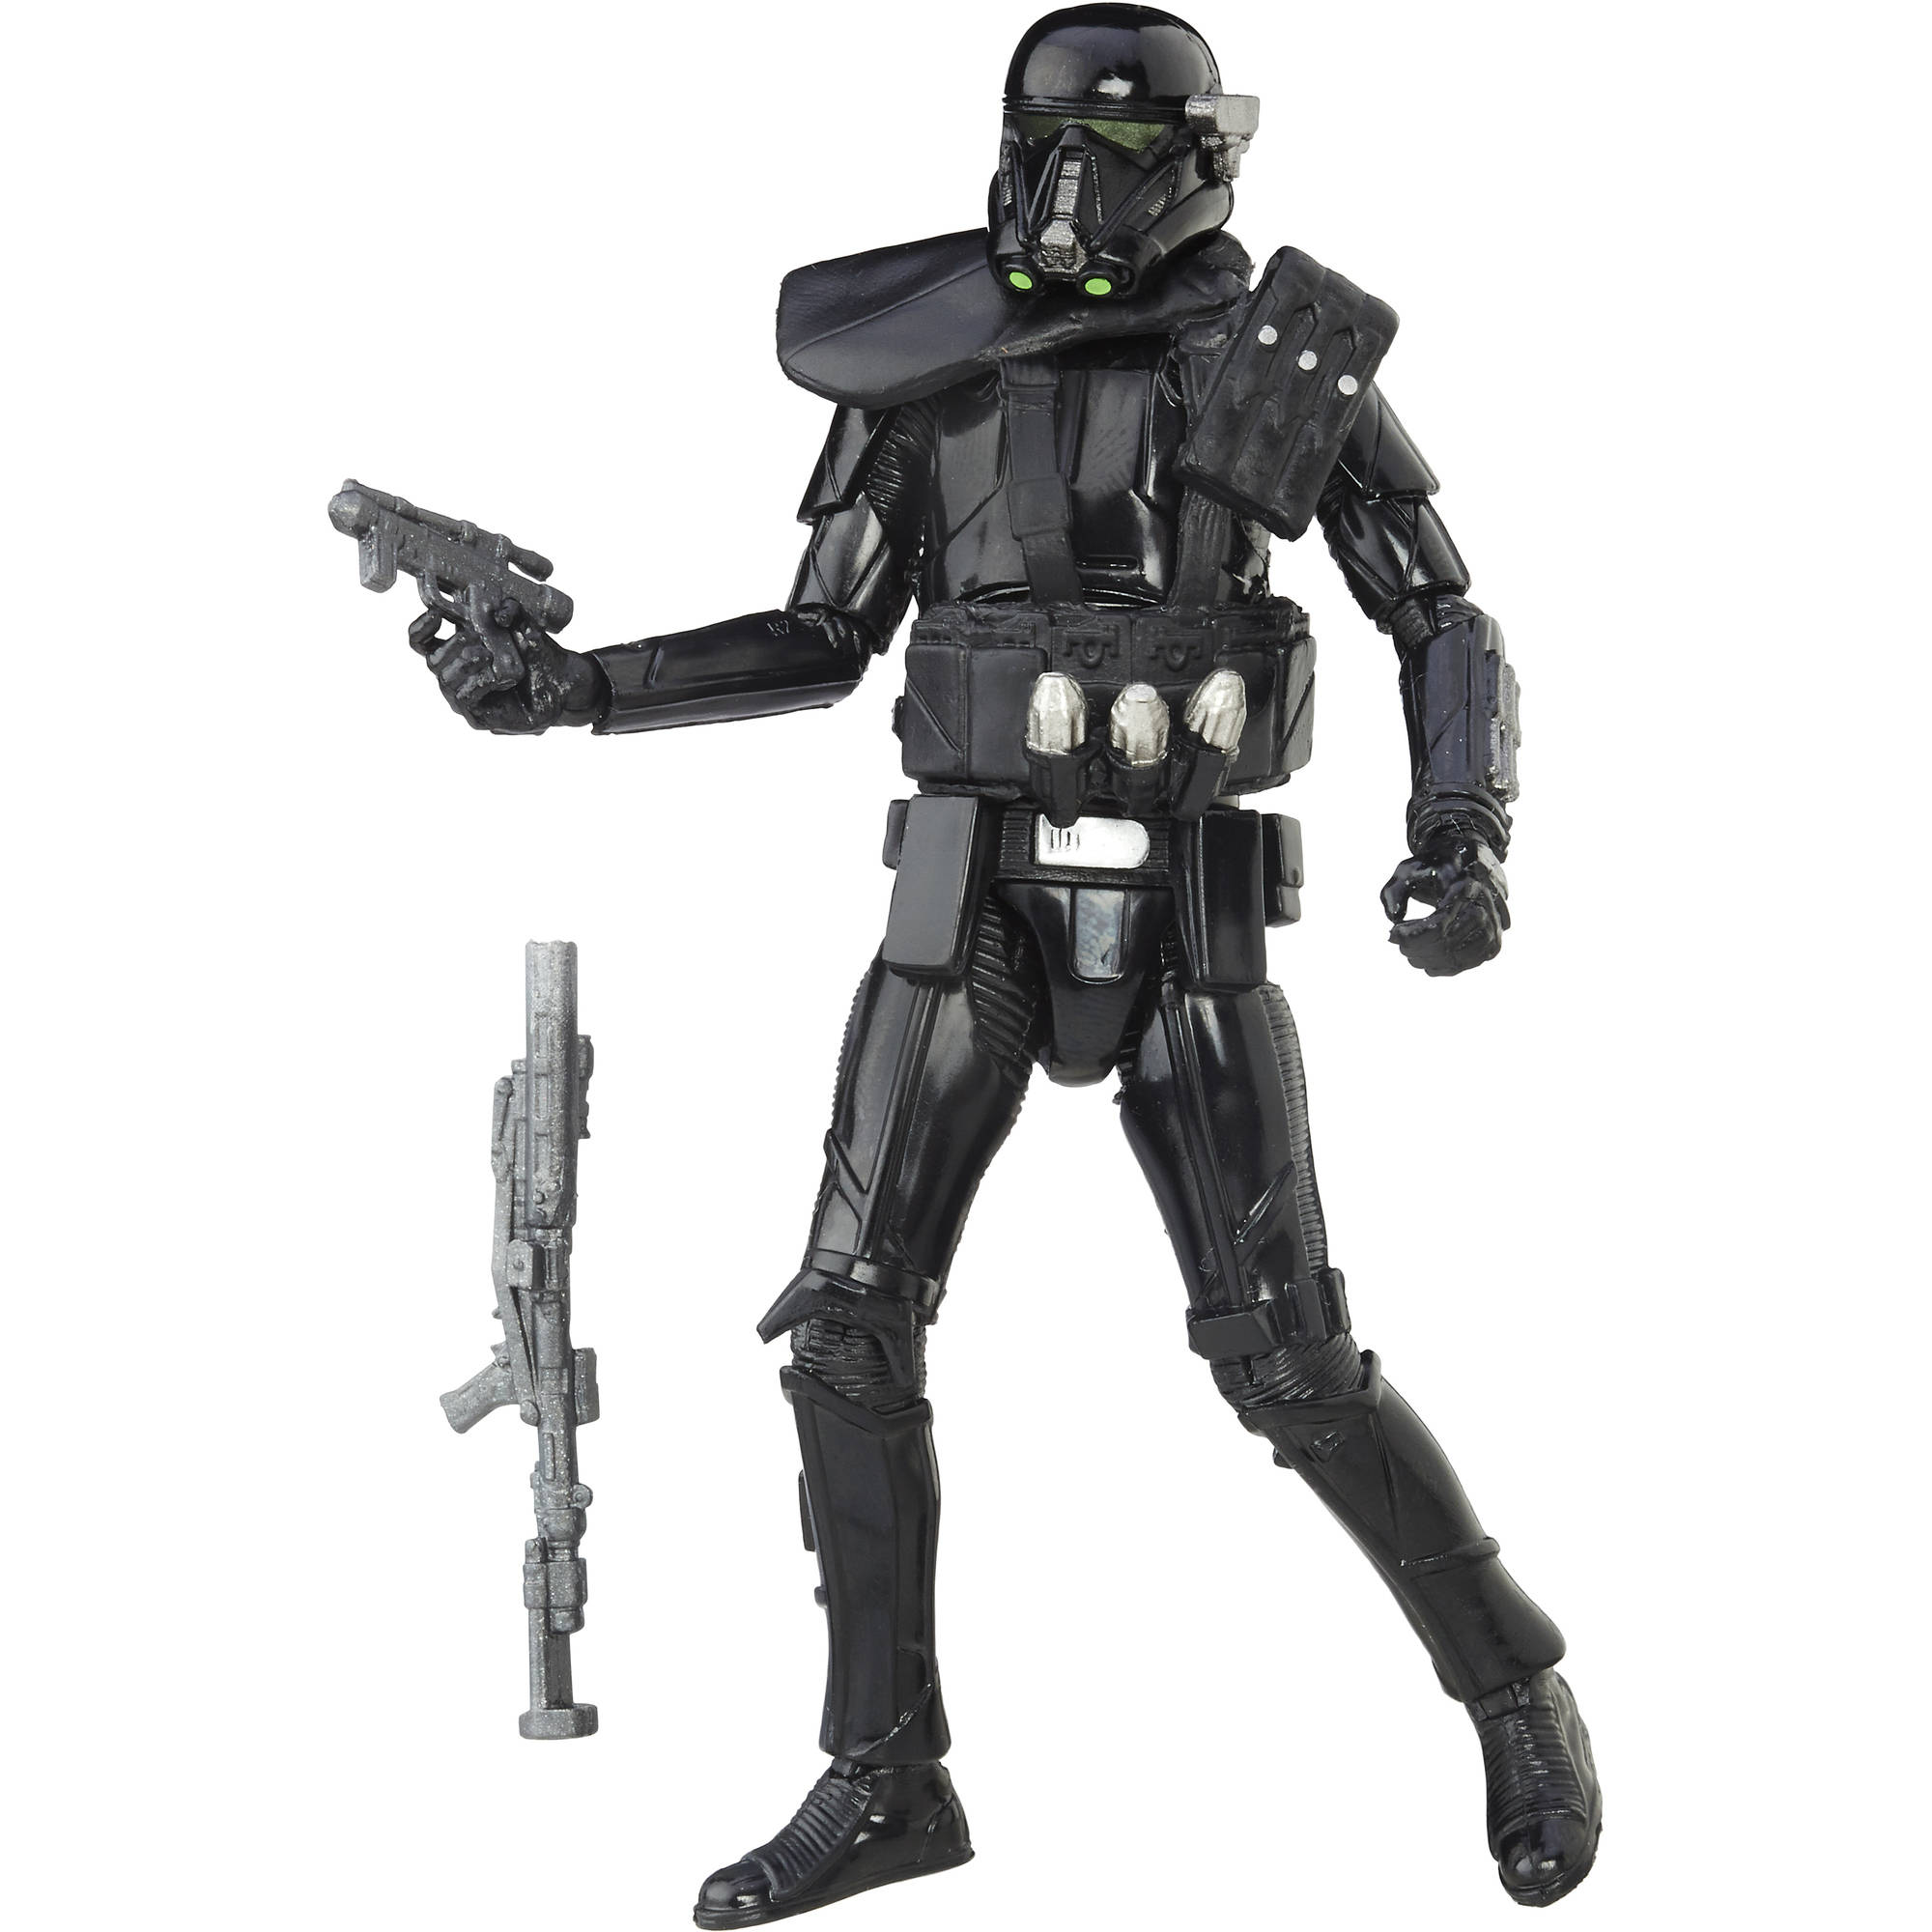 Star Wars Black Series Rogue One Imperial Death Trooper